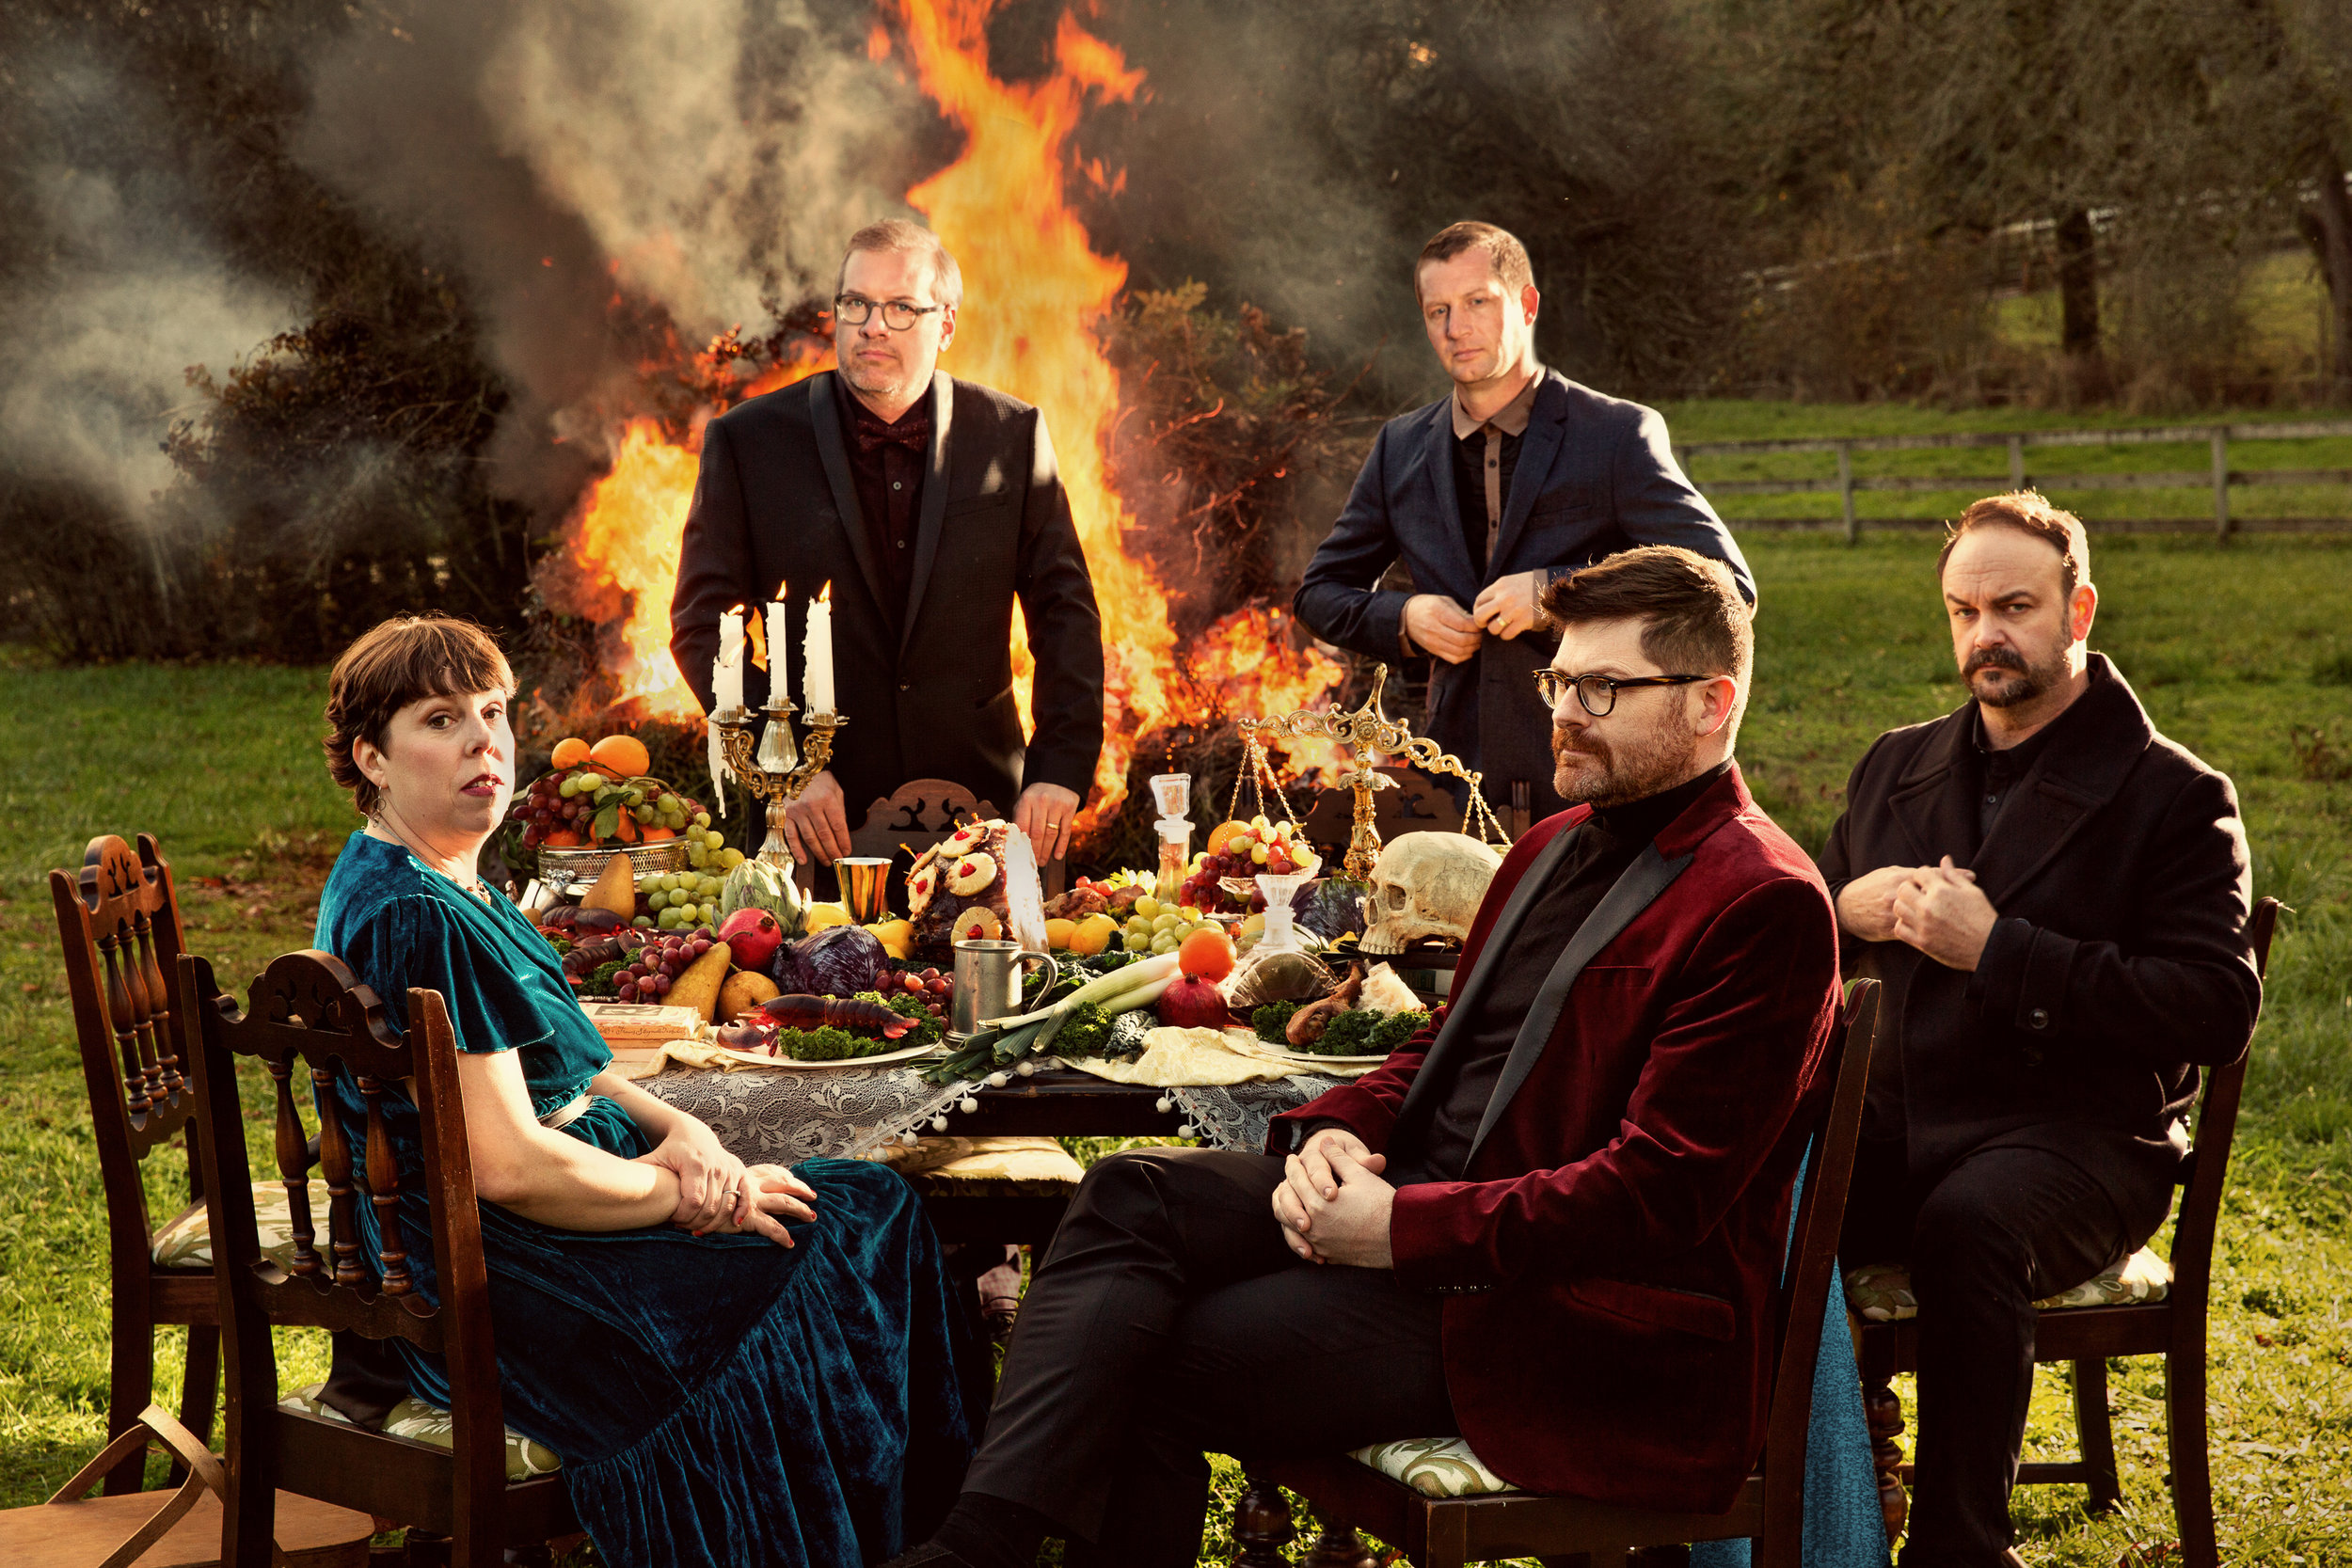 HA_171204_The Decemberists_Andres_Dinner Party_1_FINAL.jpg